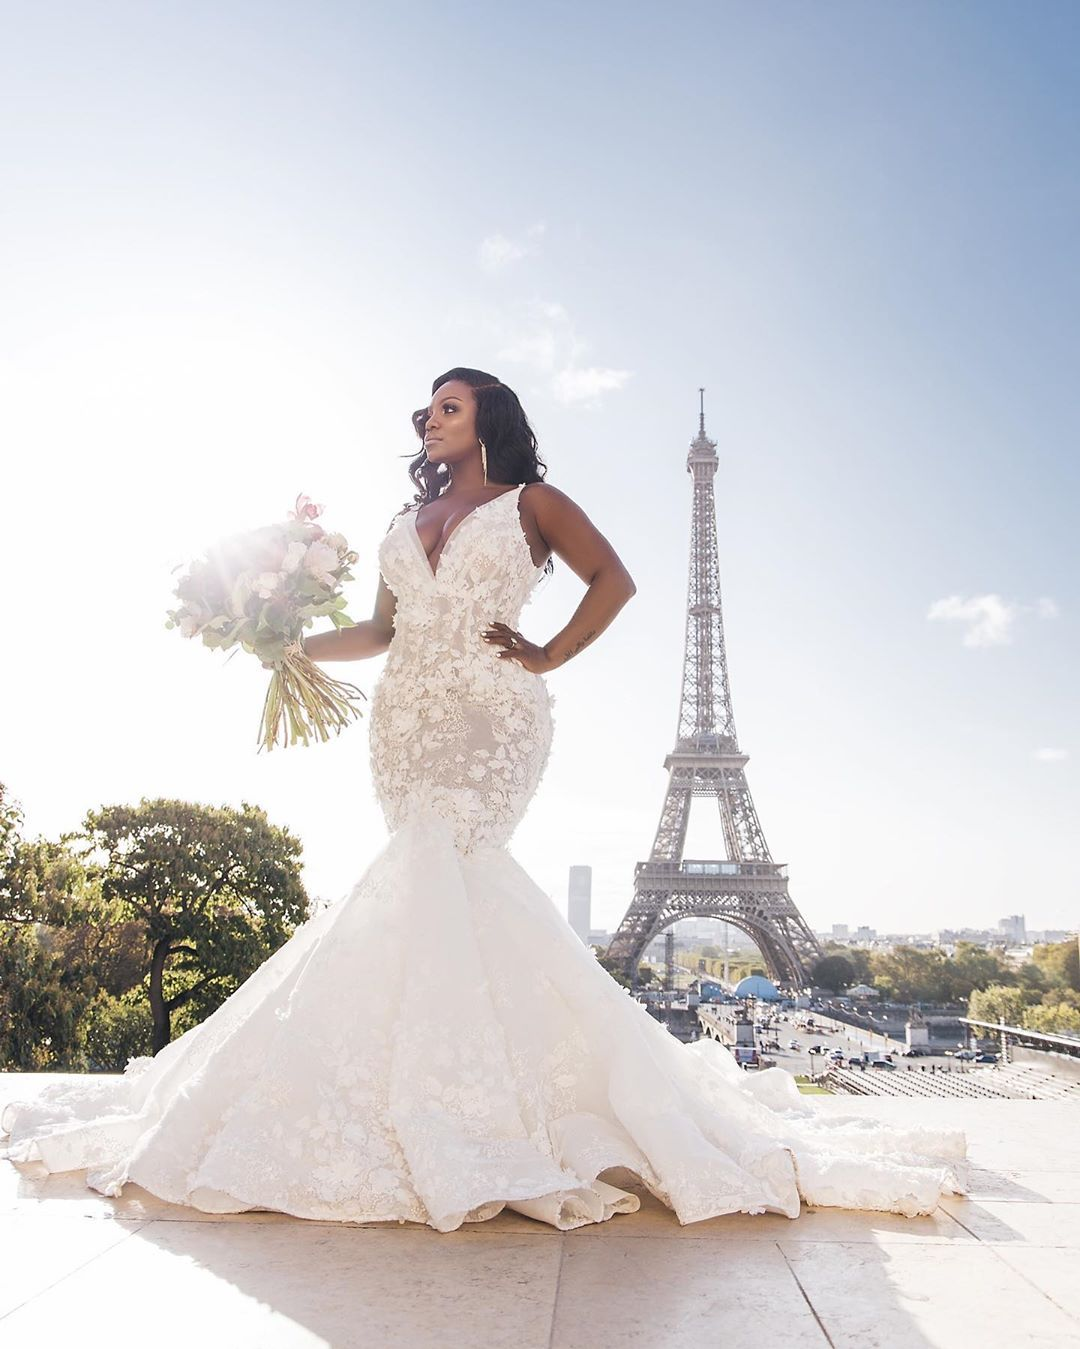 Tiarramonet On Instagram I Ve Always Dreamed Of Having This Iconic Shot Framed In My Home I Still Cannot Believe T In 2020 Bridal Inspiration Wedding Dresses Bridal